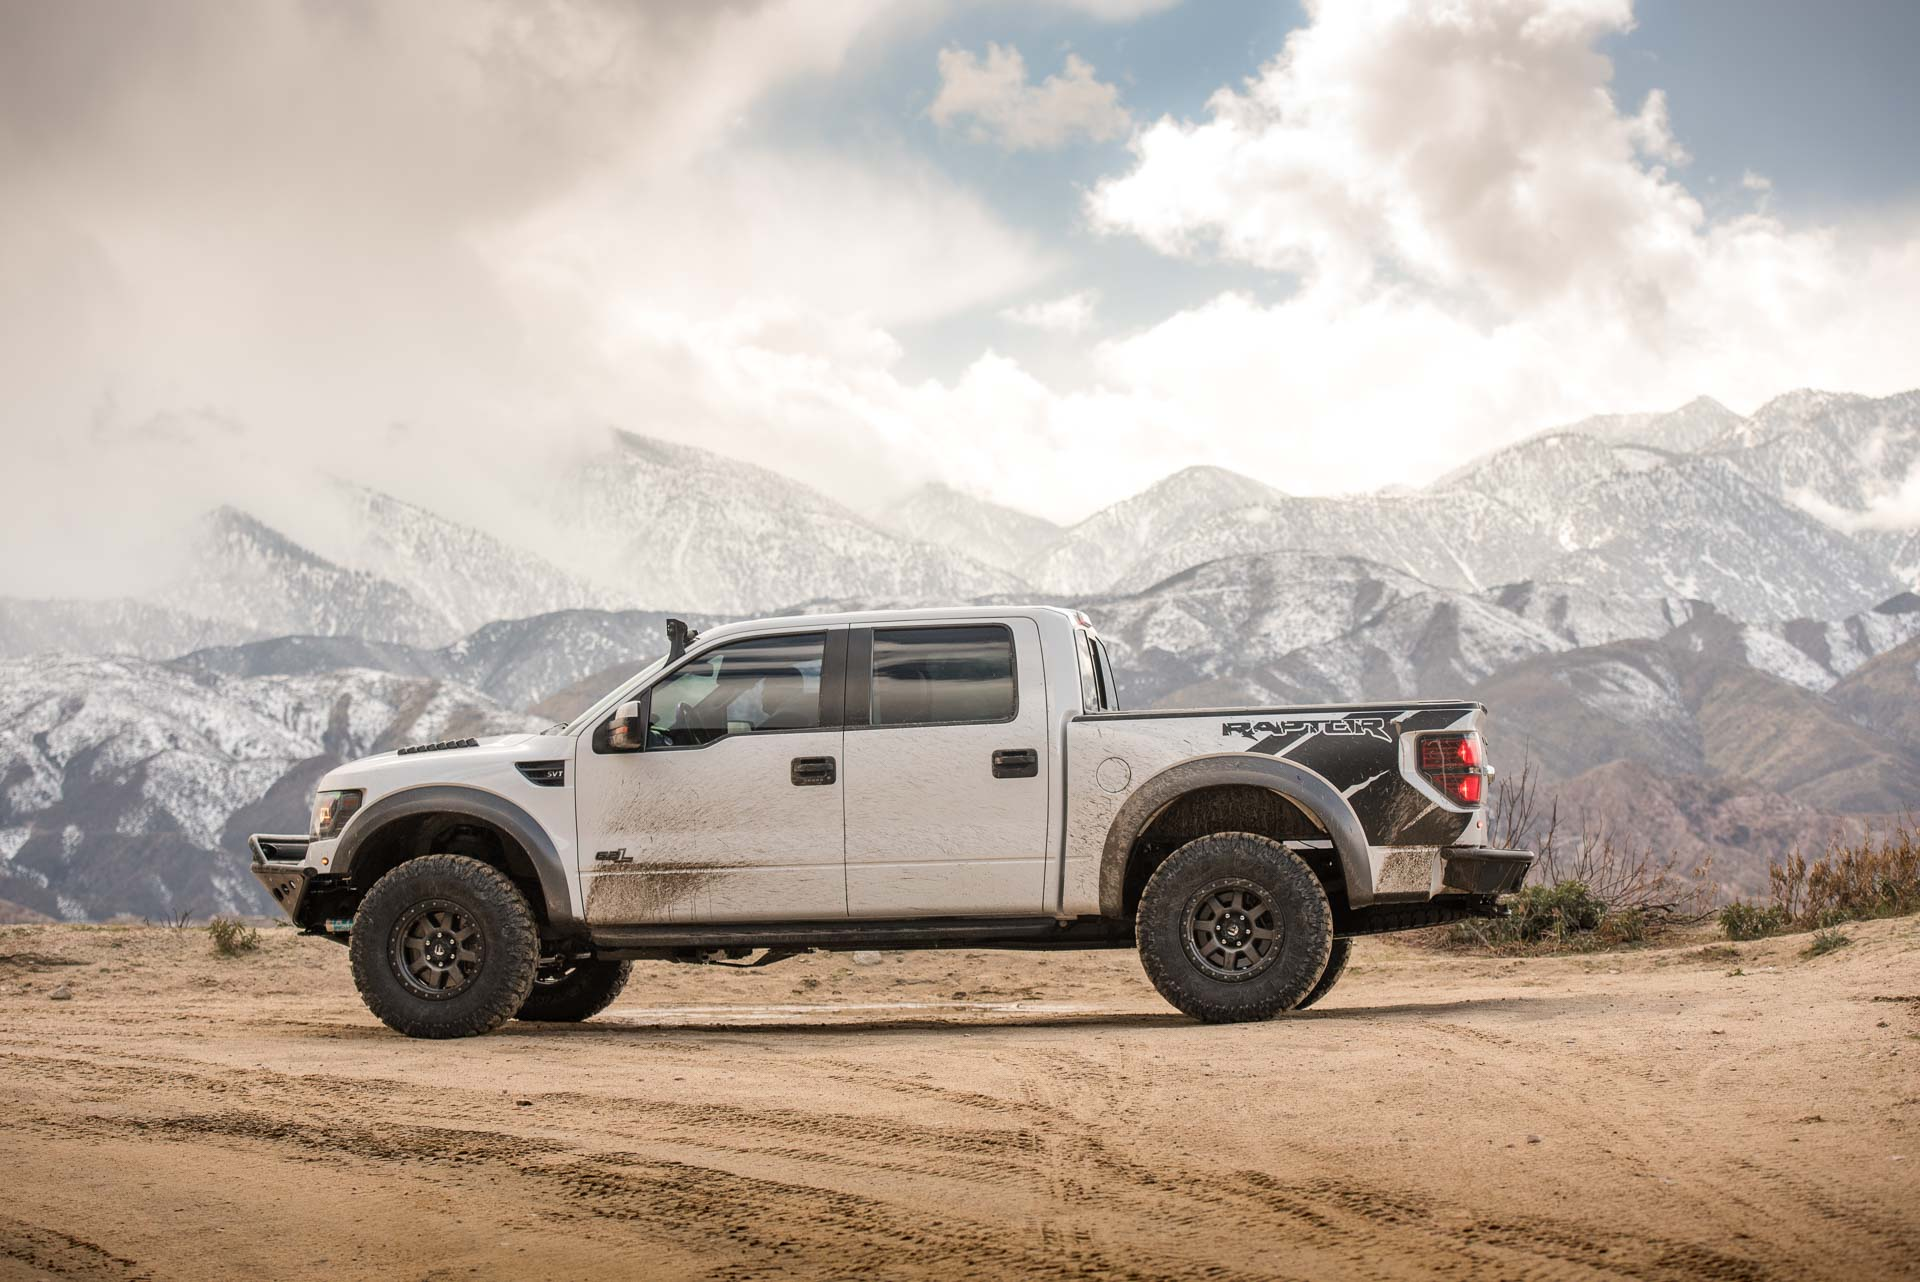 GEN1 Ford SVT Raptor in the mountains with Patagonia MTs